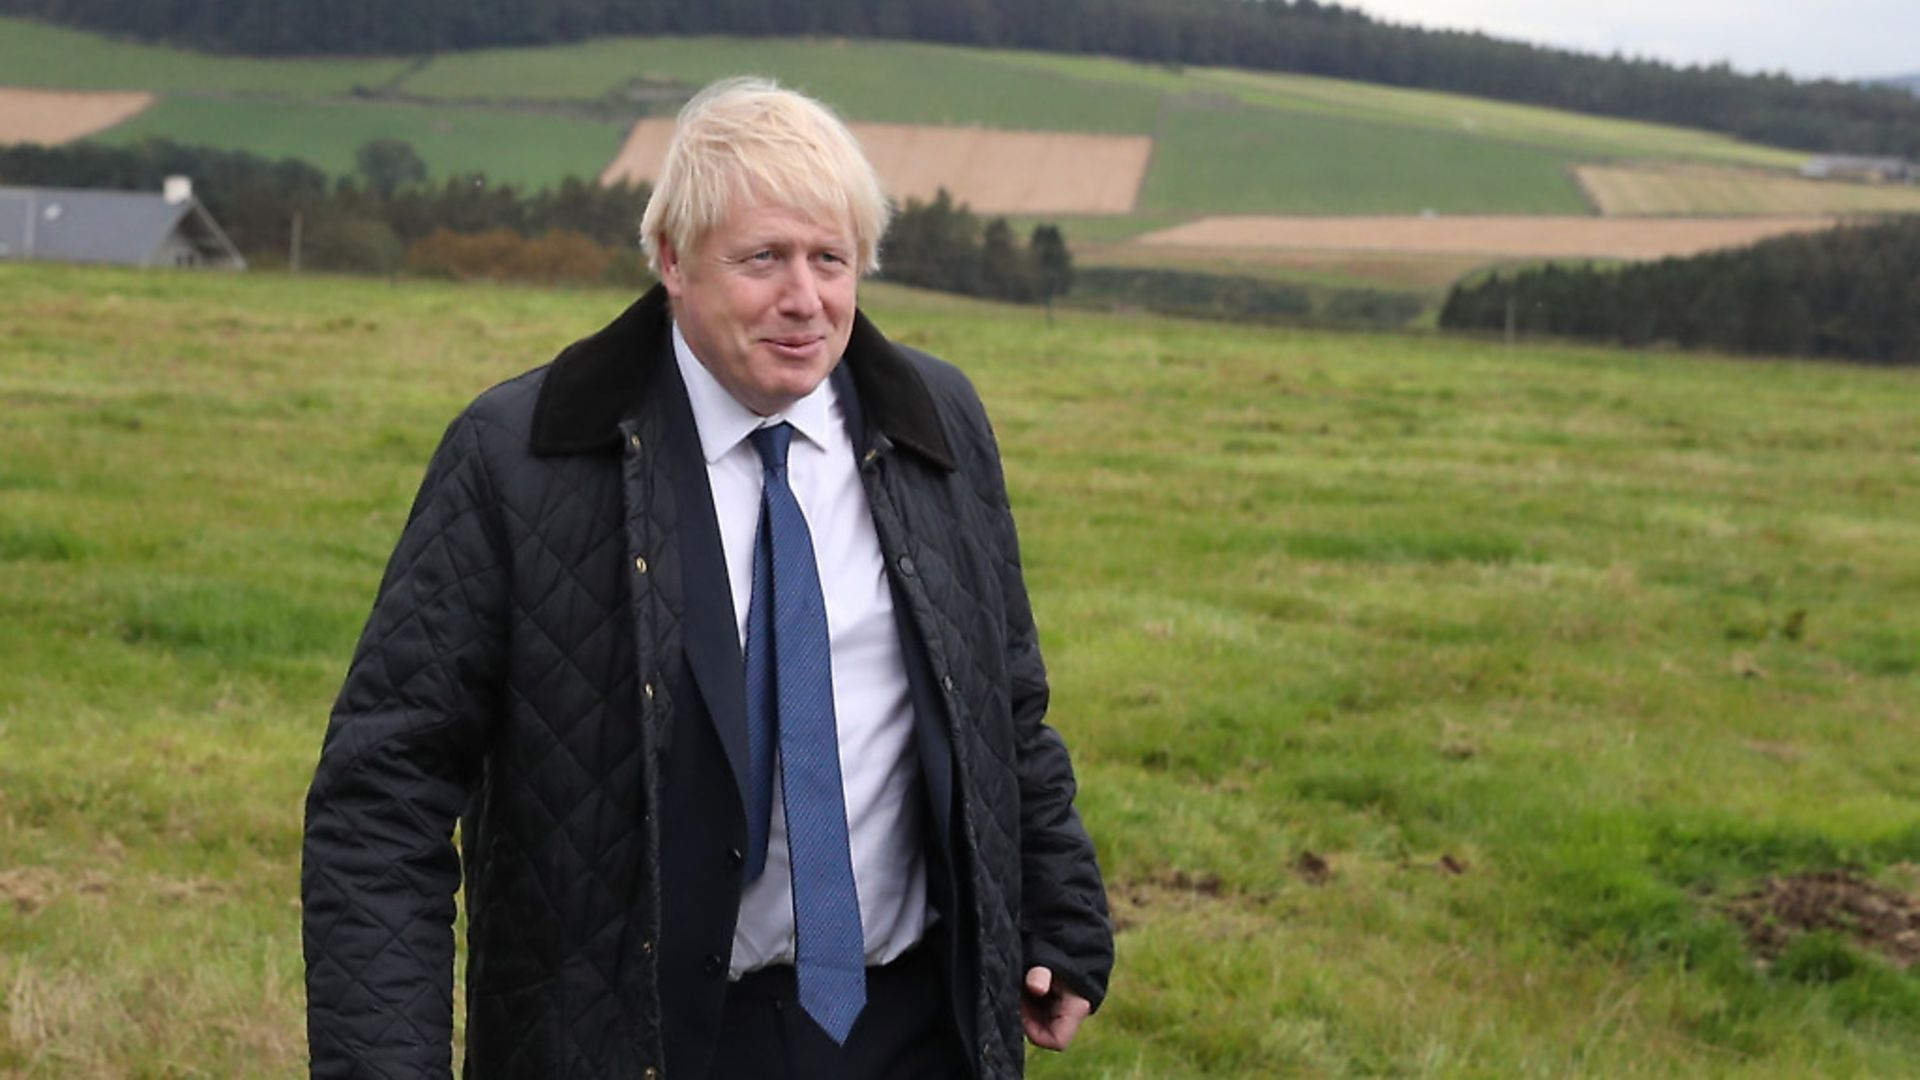 Prime Minister Boris Johnson during a visit to Darnford Farm in Banchory near Aberdeen. Photograph: Andrew Milligan/PA. - Credit: PA Wire/PA Images